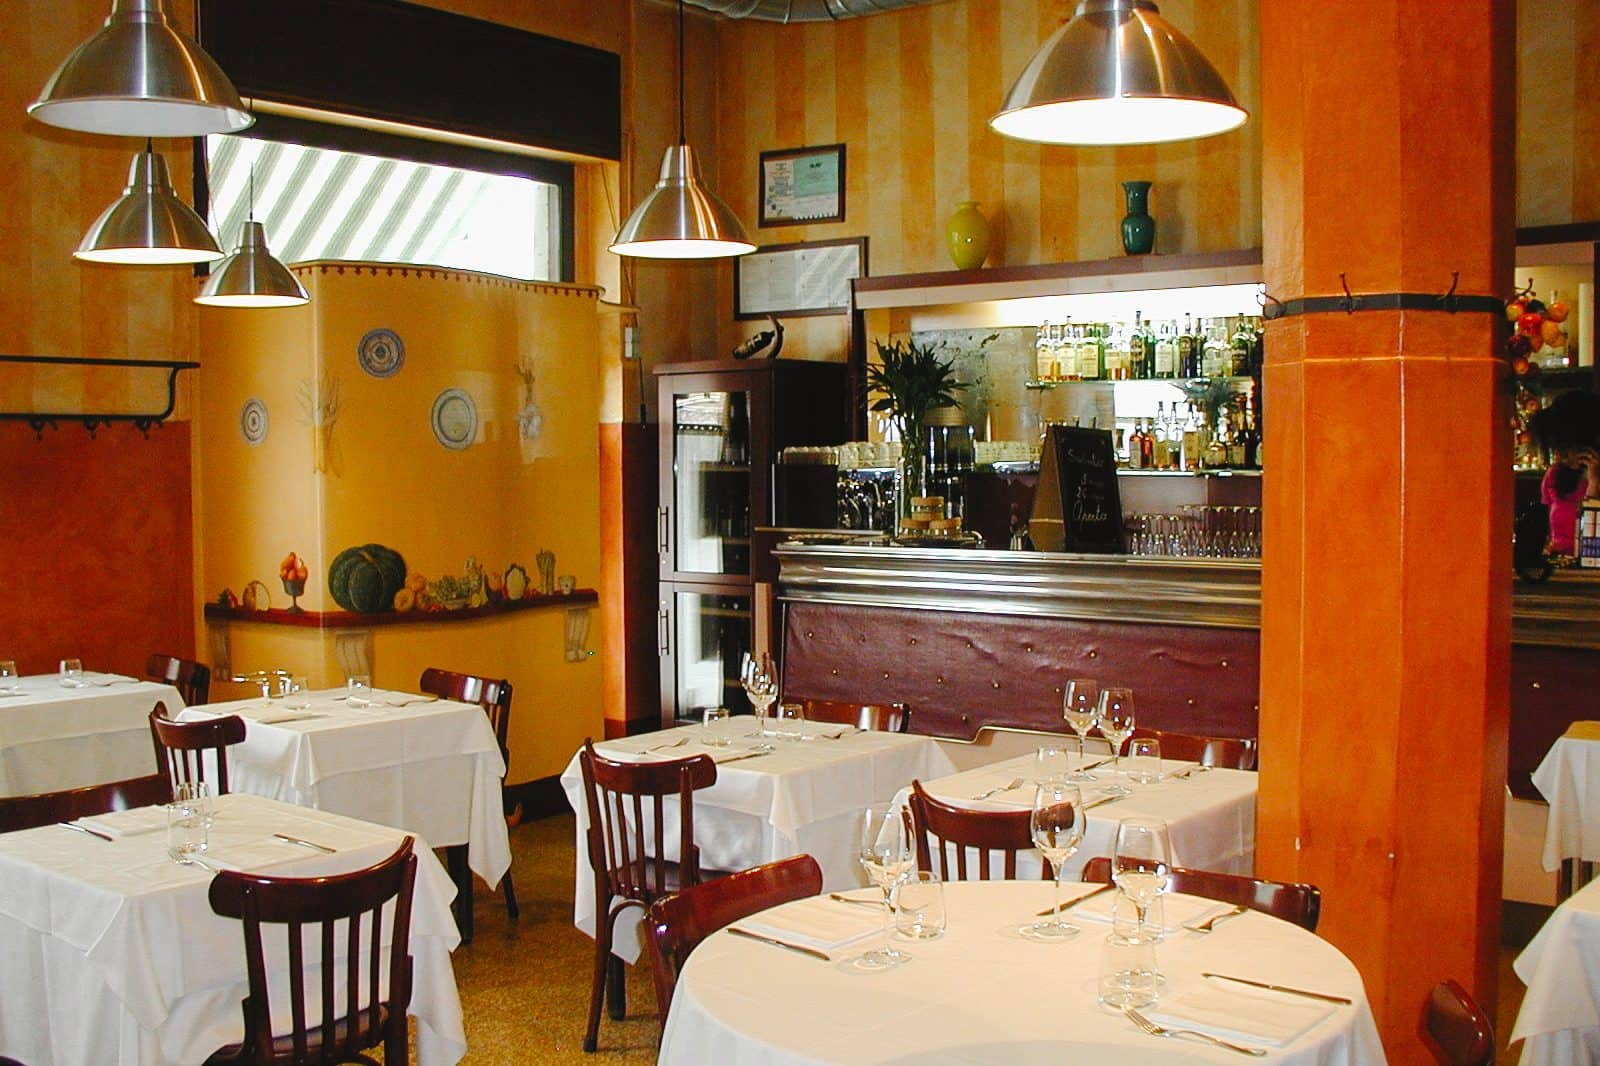 The classic orange interior and padded bar of Trattoria del Nuovo Macello